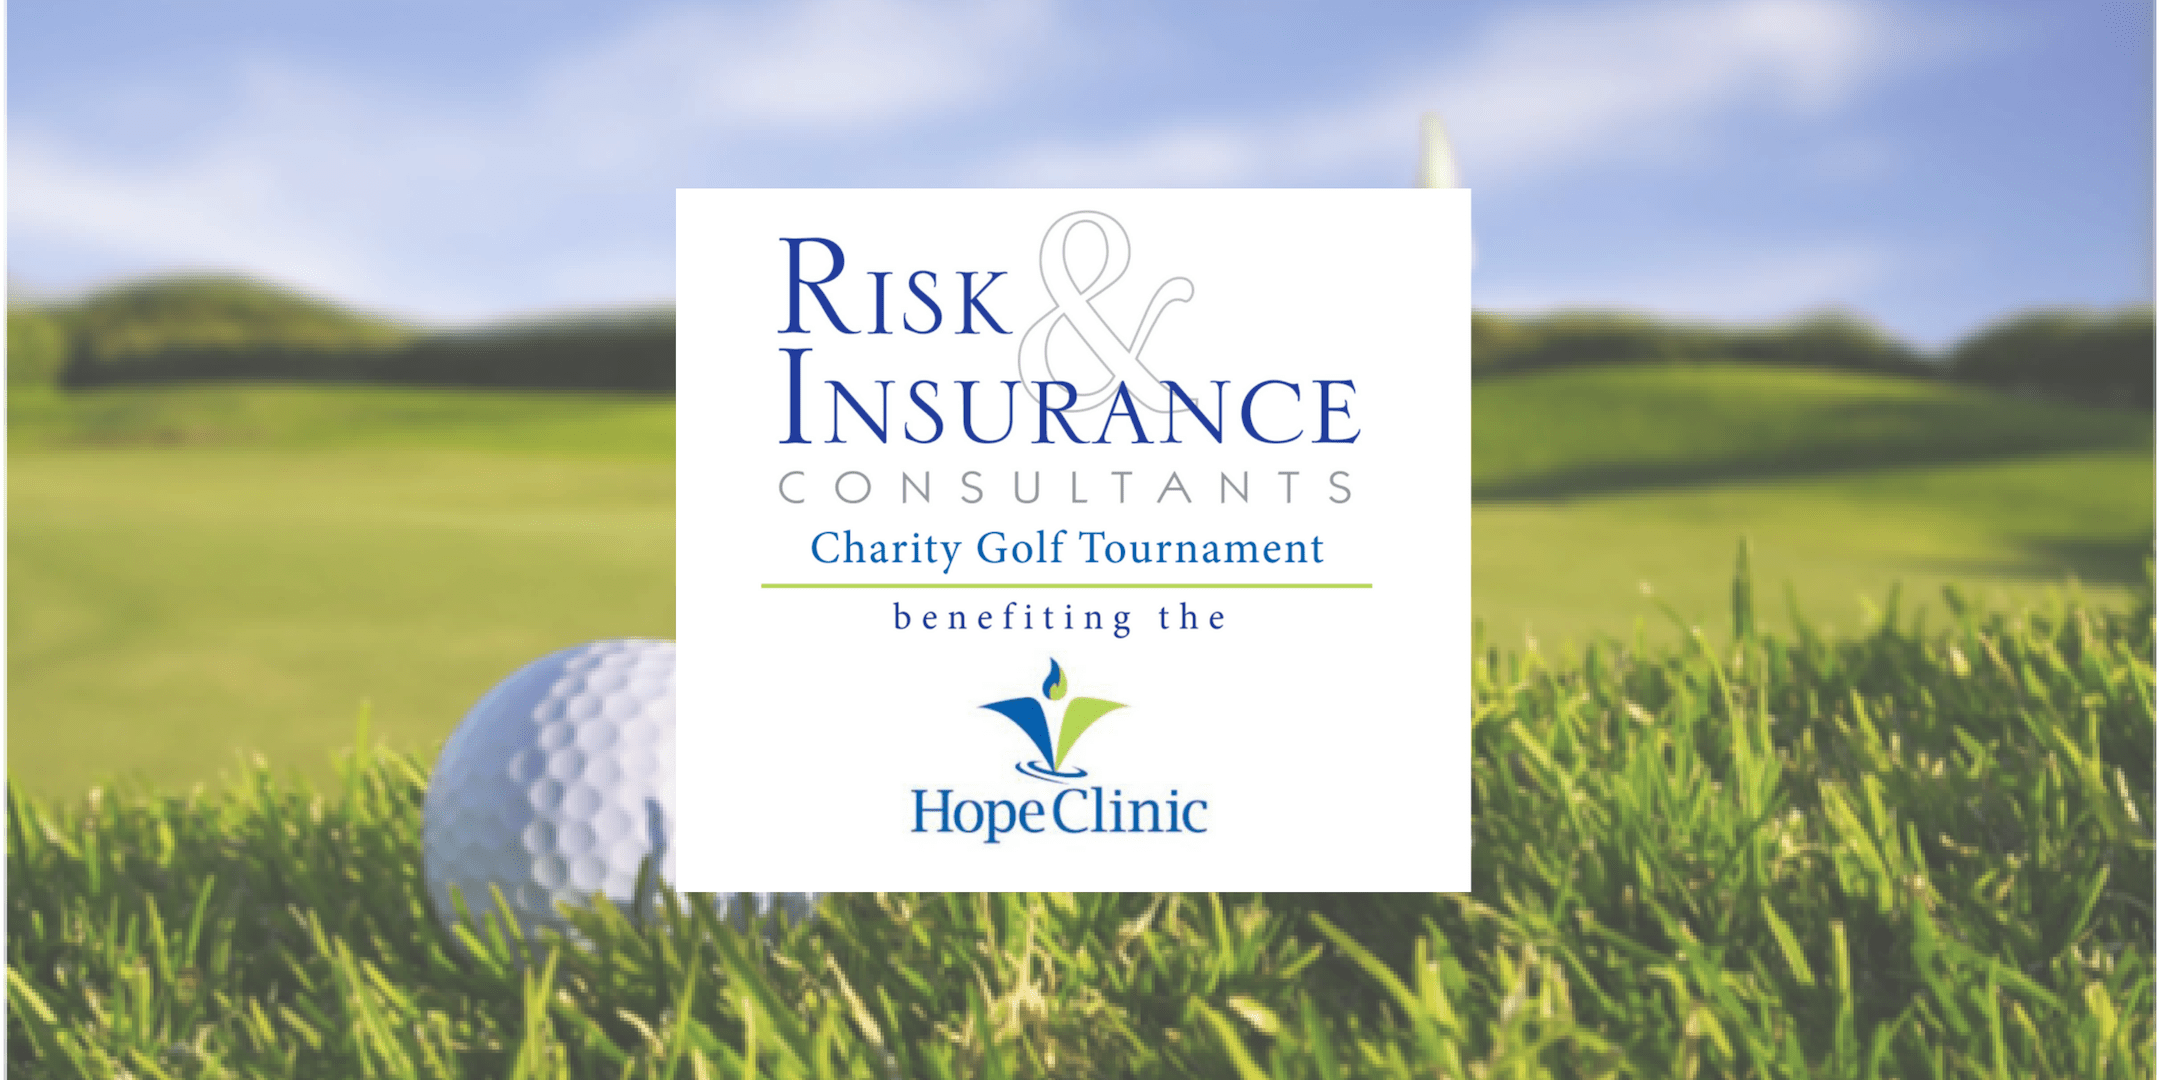 Risk and Insurance Consultants Charity Golf Tournament